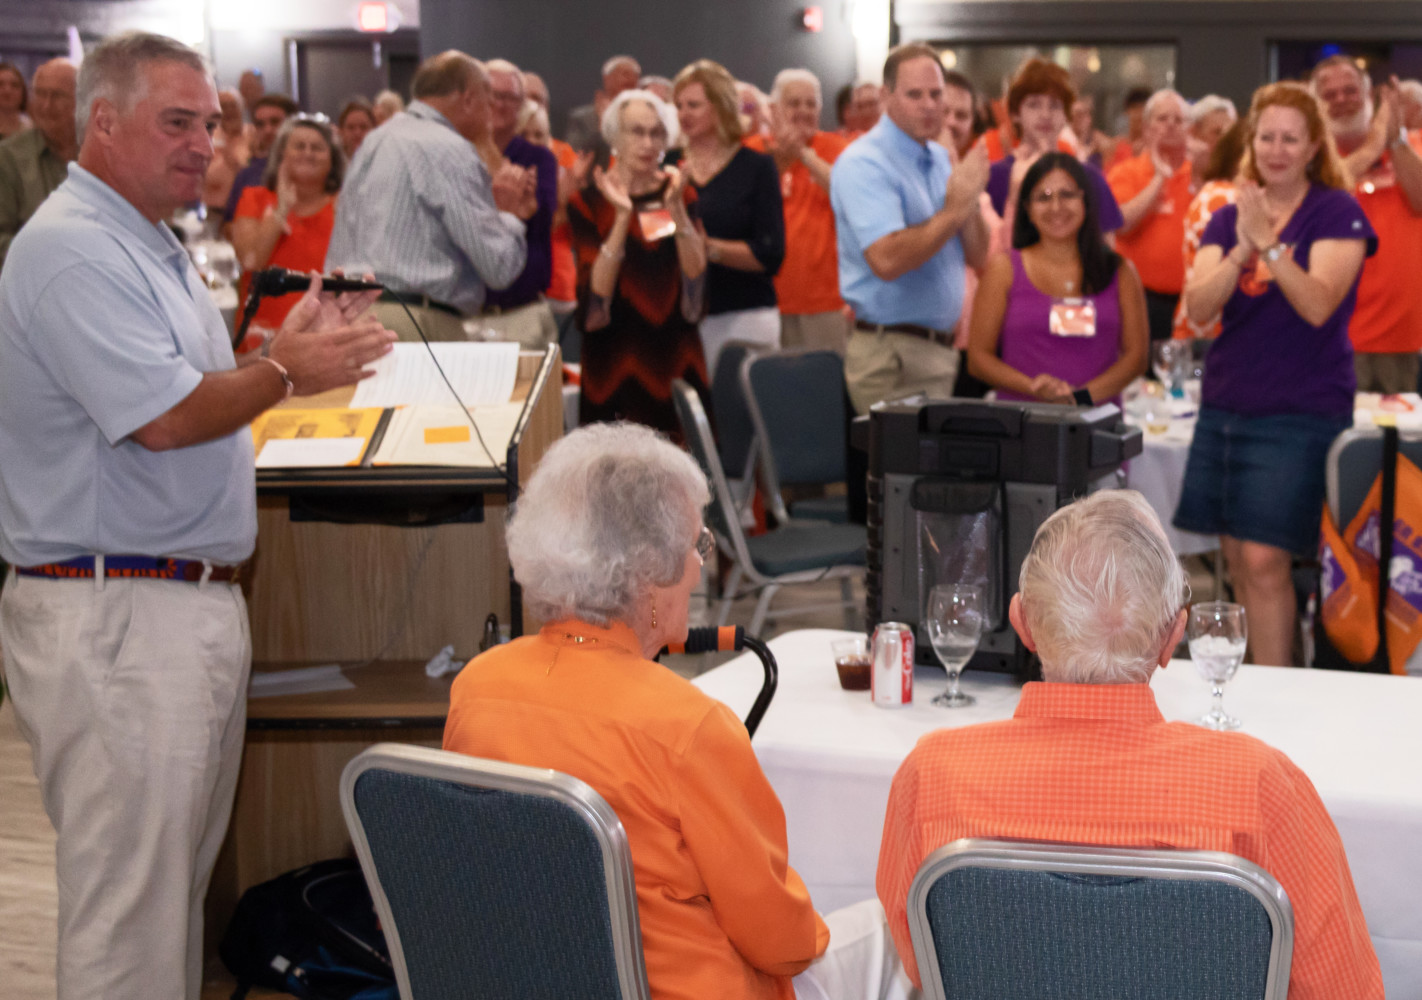 mccabe camping chairs argos chair covers black gift announced at first tiger band reunion clemson jim and barbara